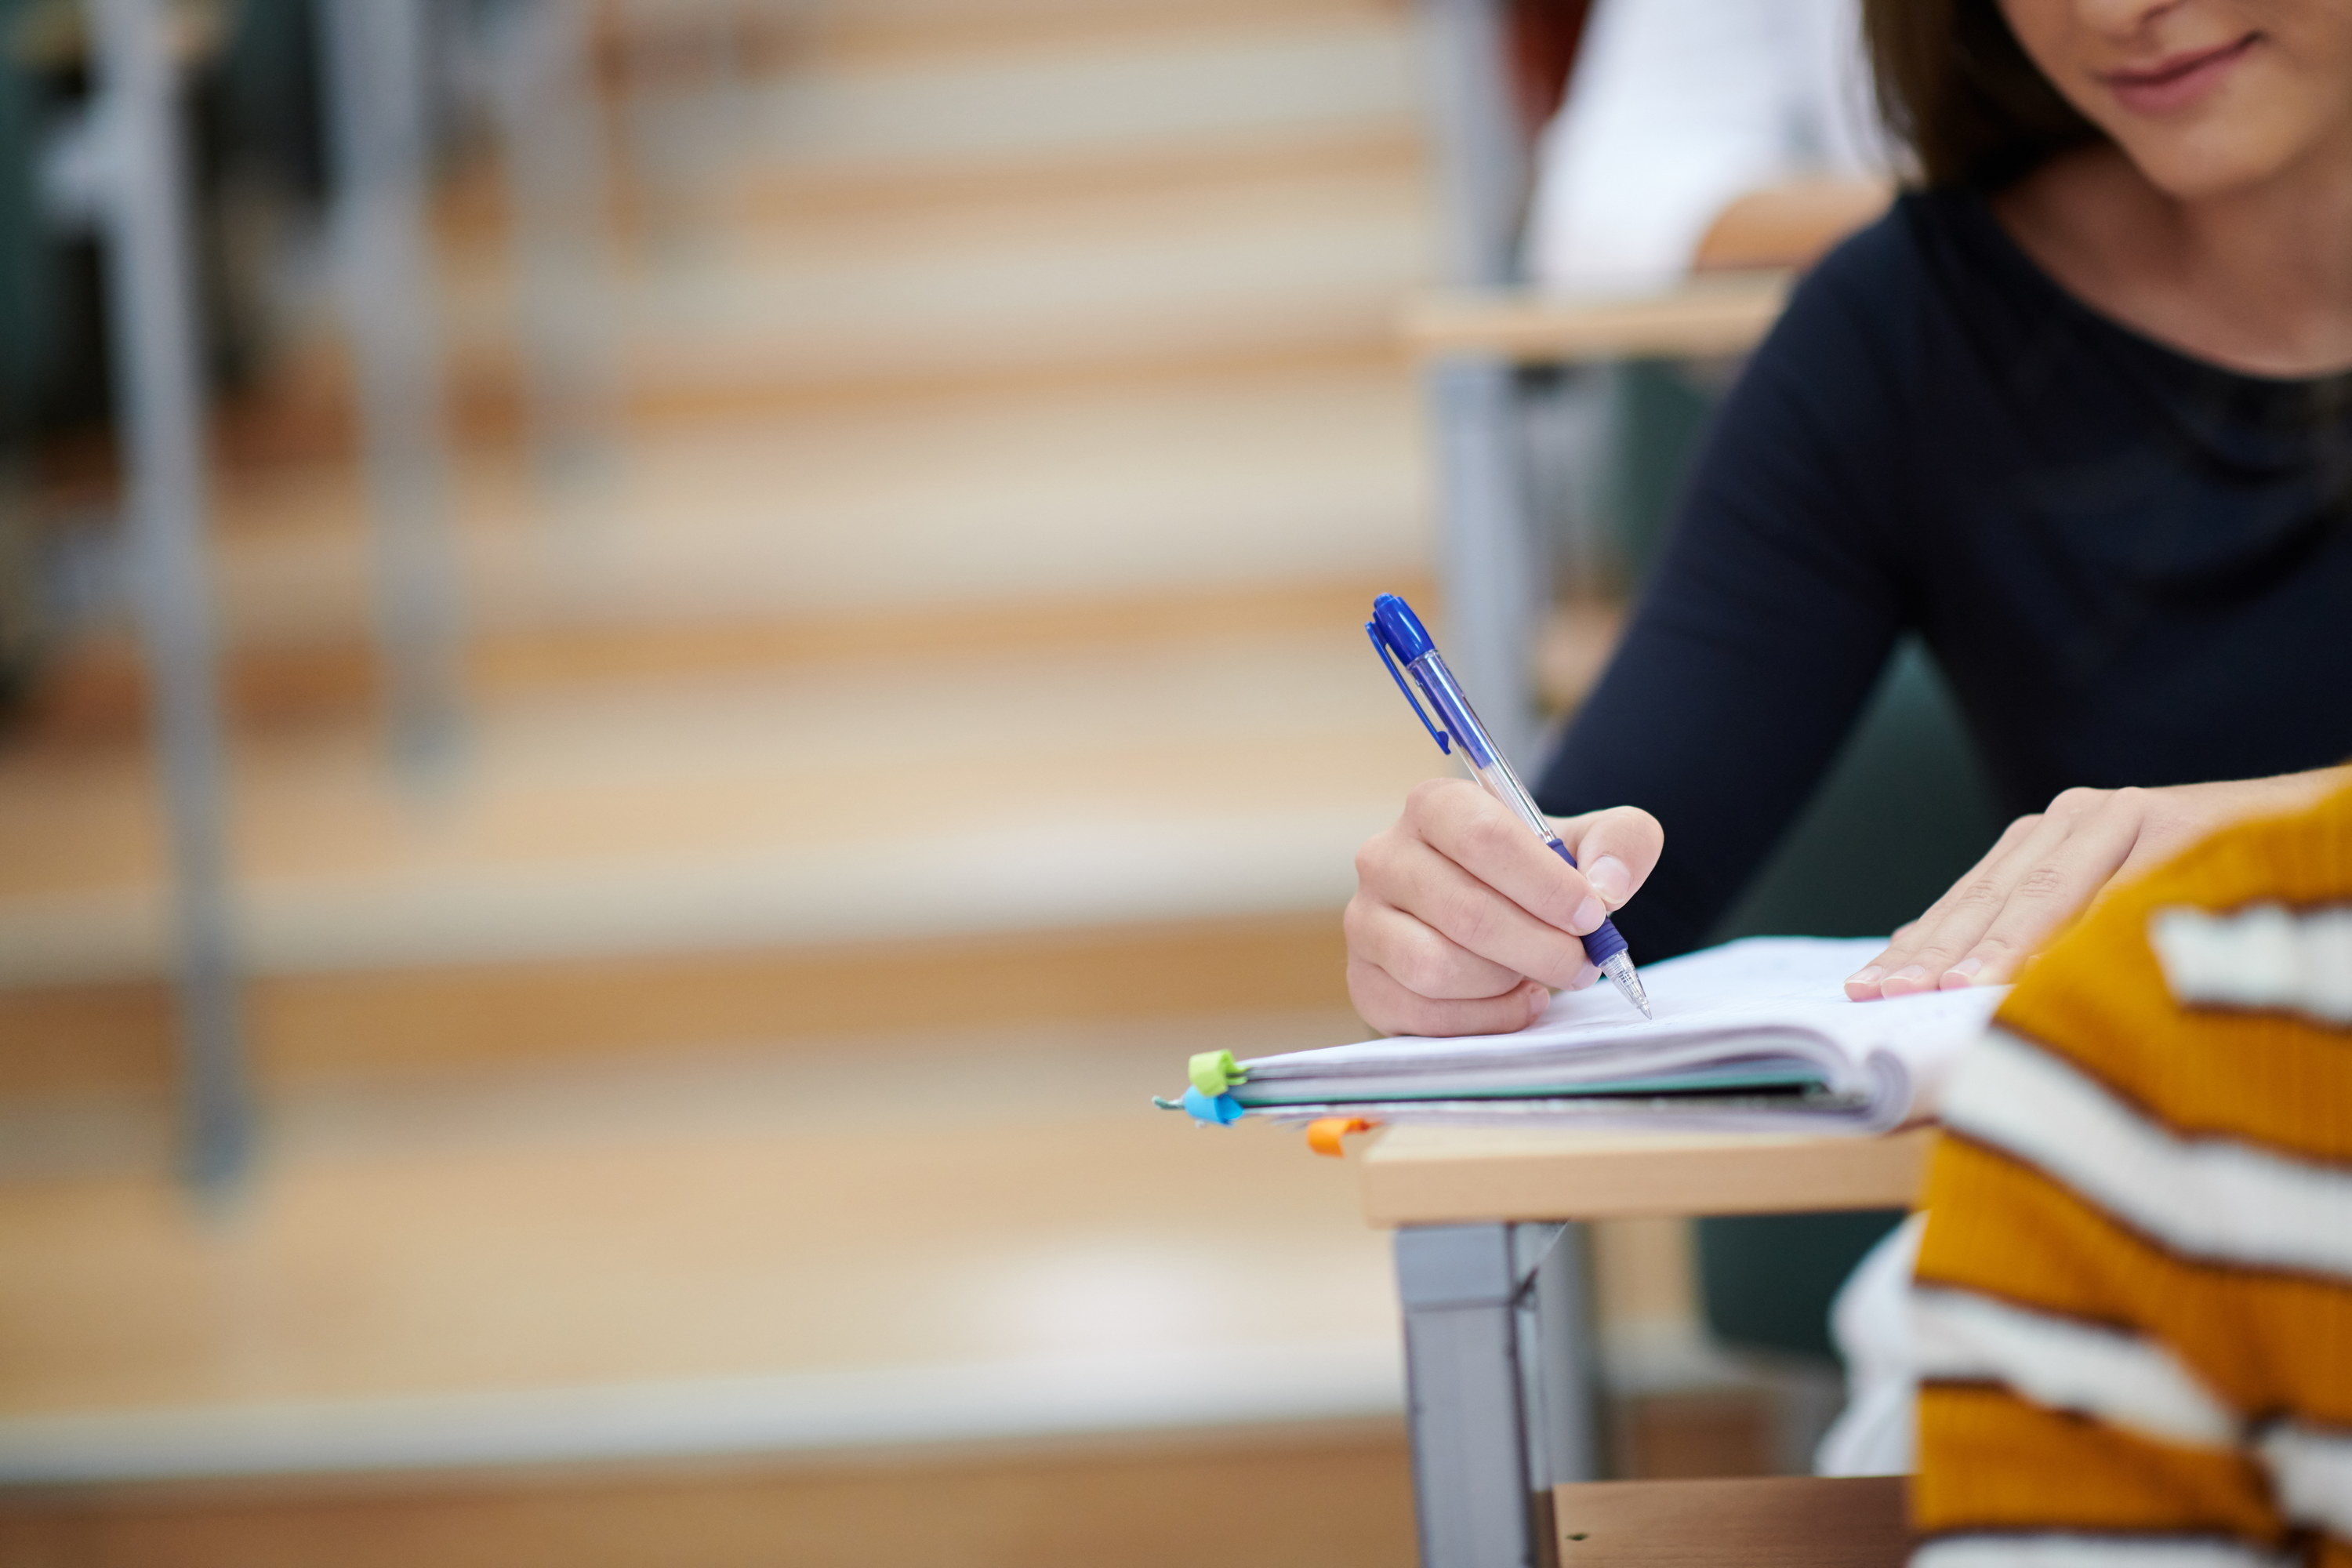 A student at their desk